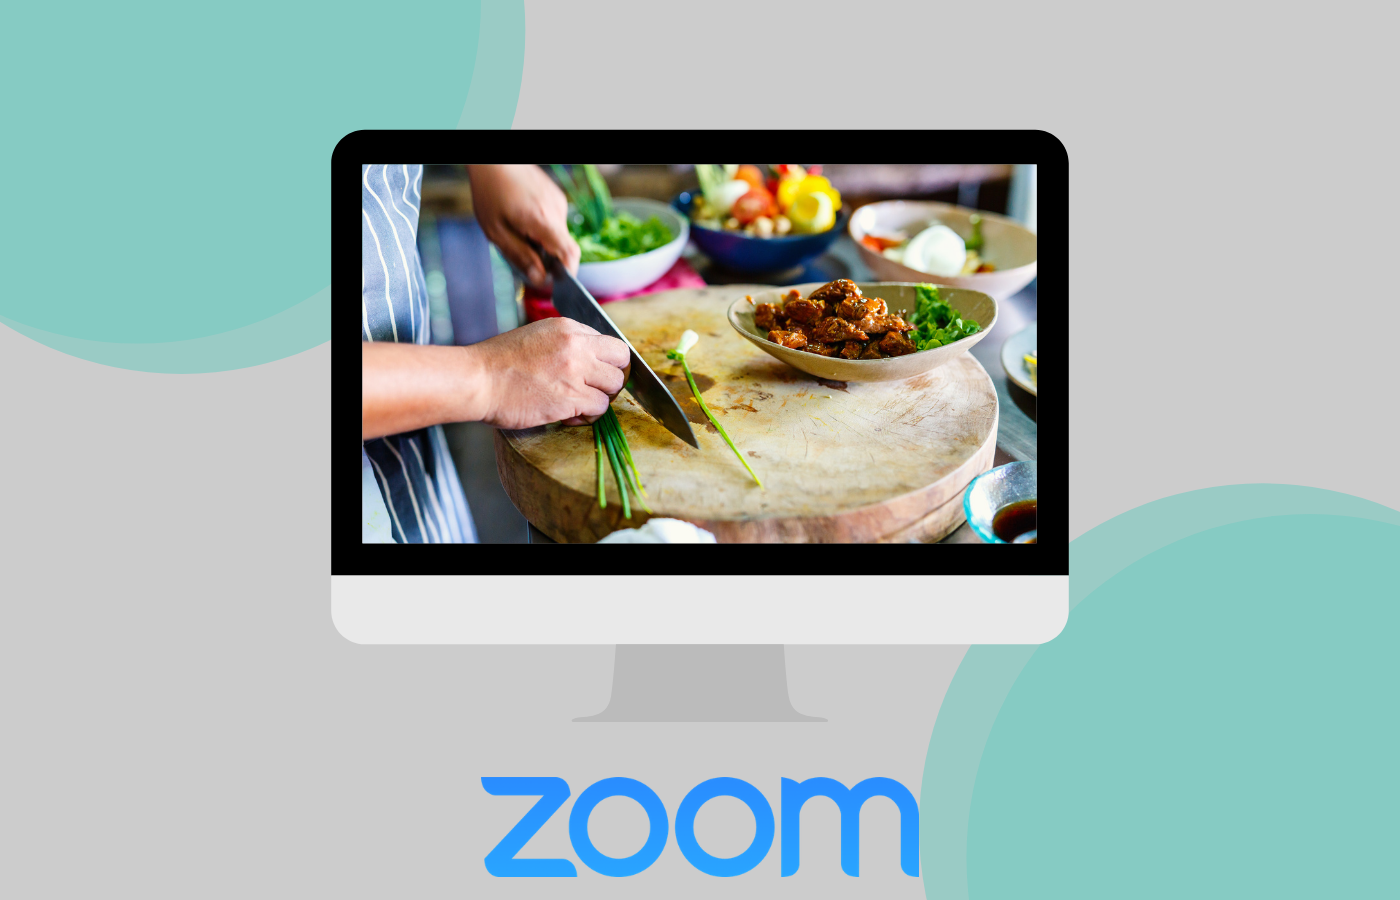 Cooking class on zoom for healthy picnic sides